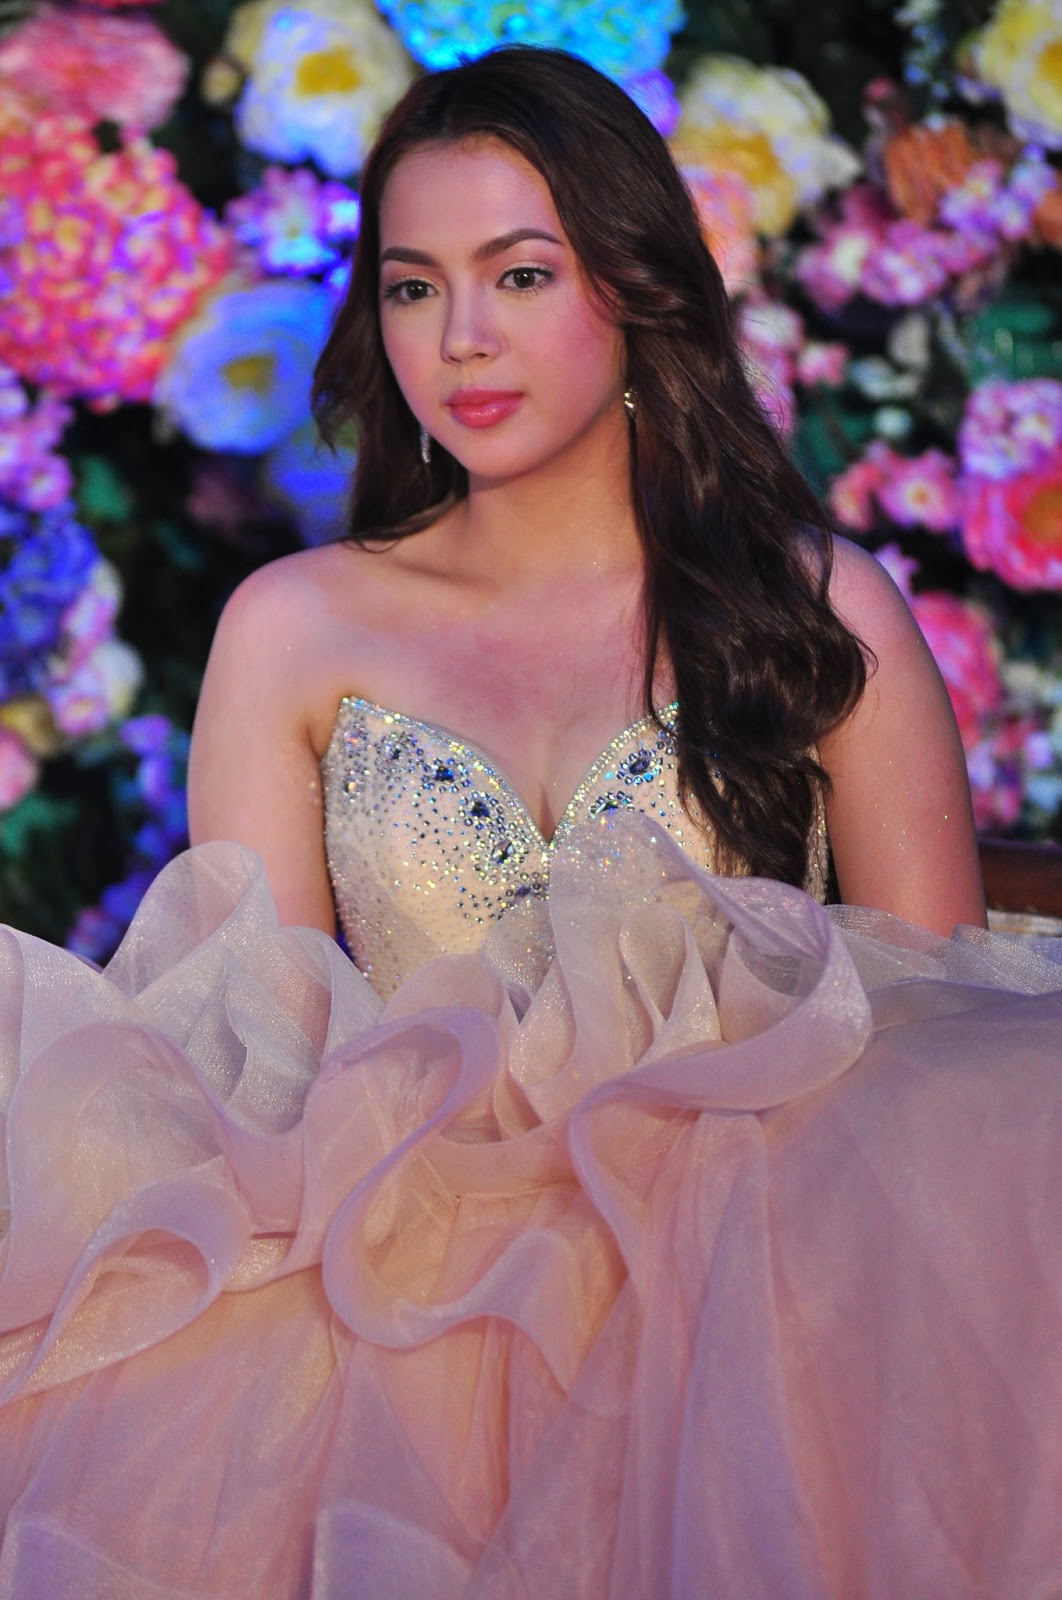 Julia Montes Is The New Face of Debut By Juan Carlo |The Manila Urbanite